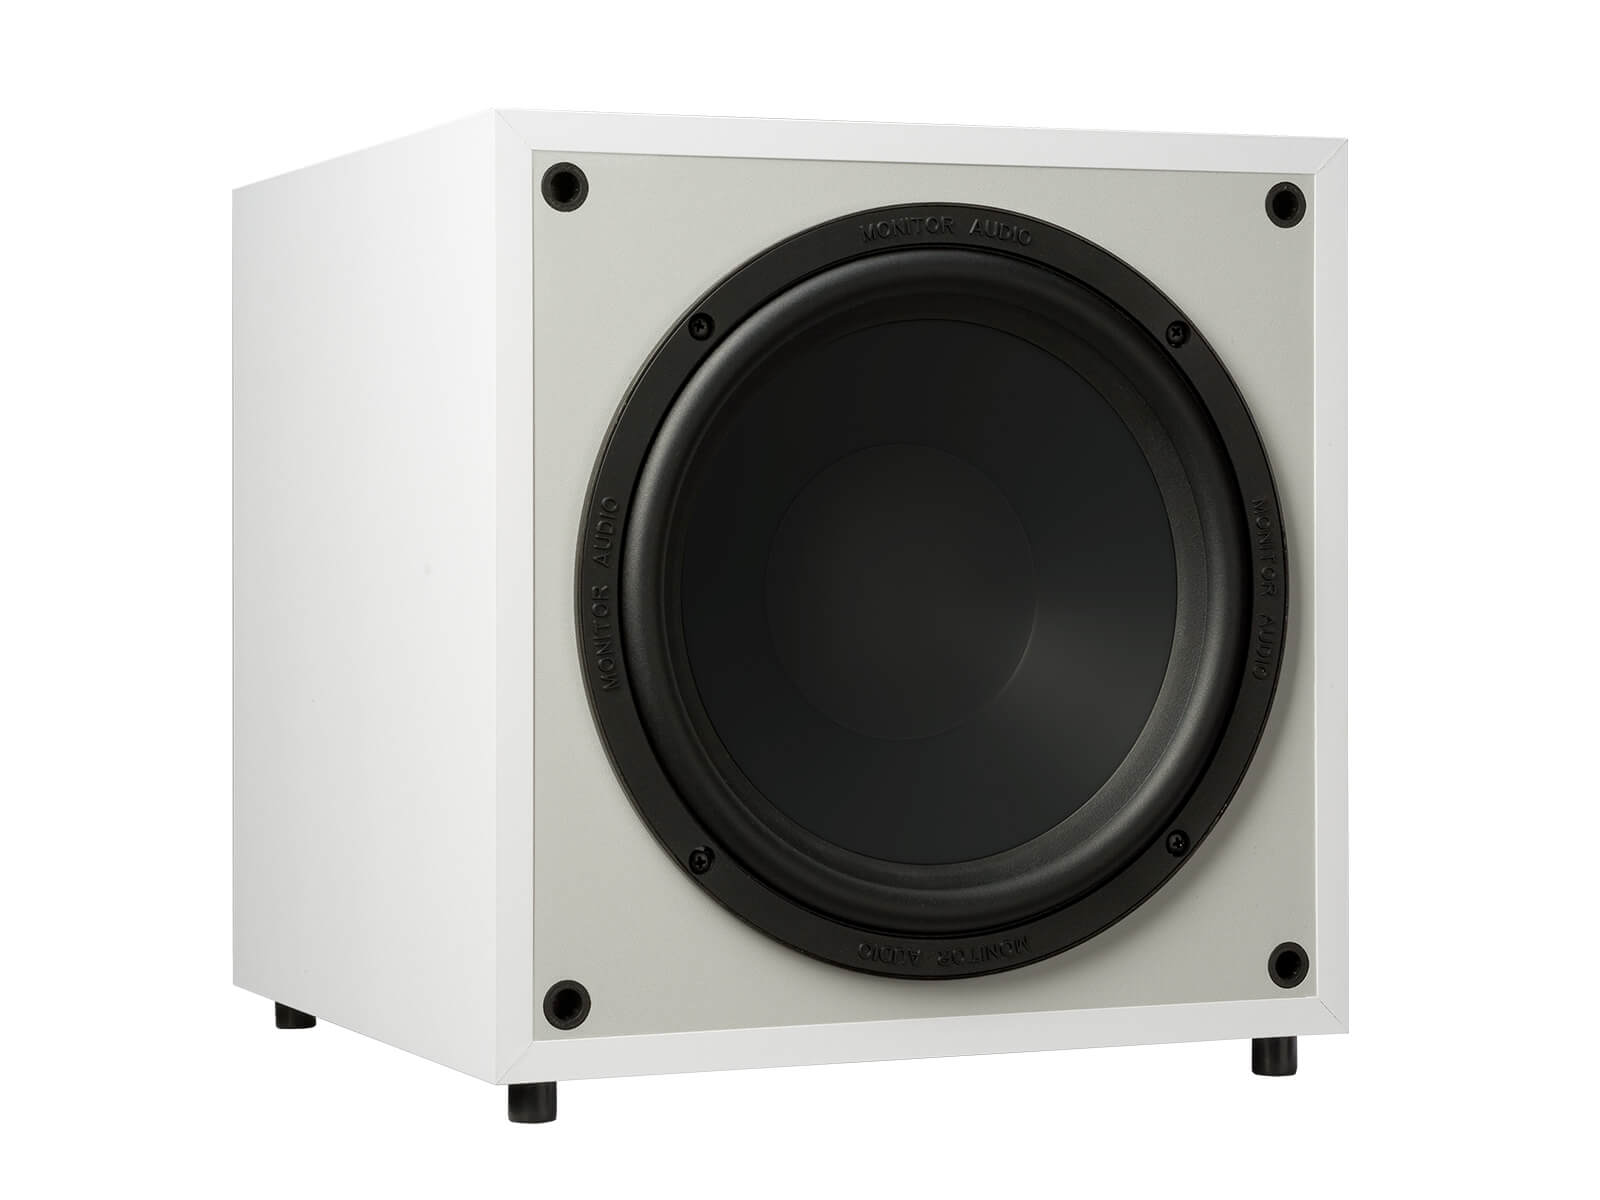 Monitor MRW-10, grille-less subwoofer, with a white finish.